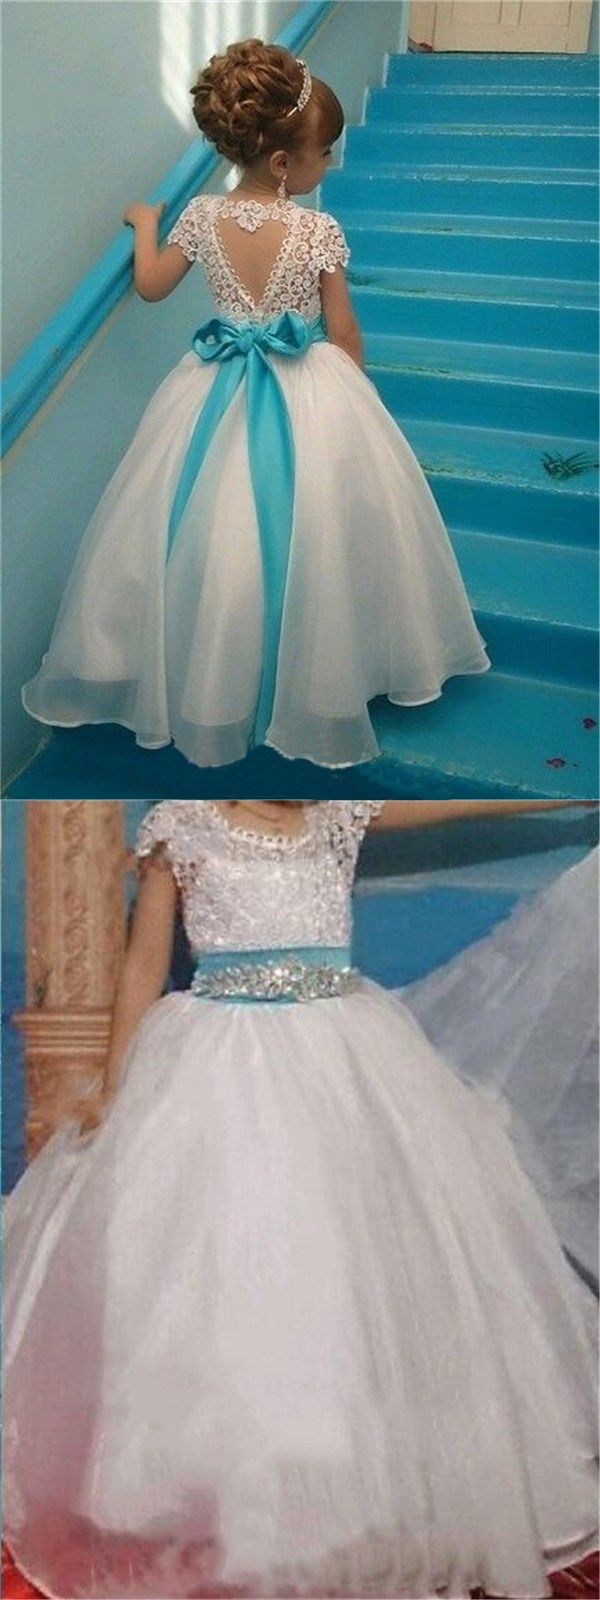 Short Sleeves Lovely Cute Lace Pretty Flower Girl Dresses with bow ...